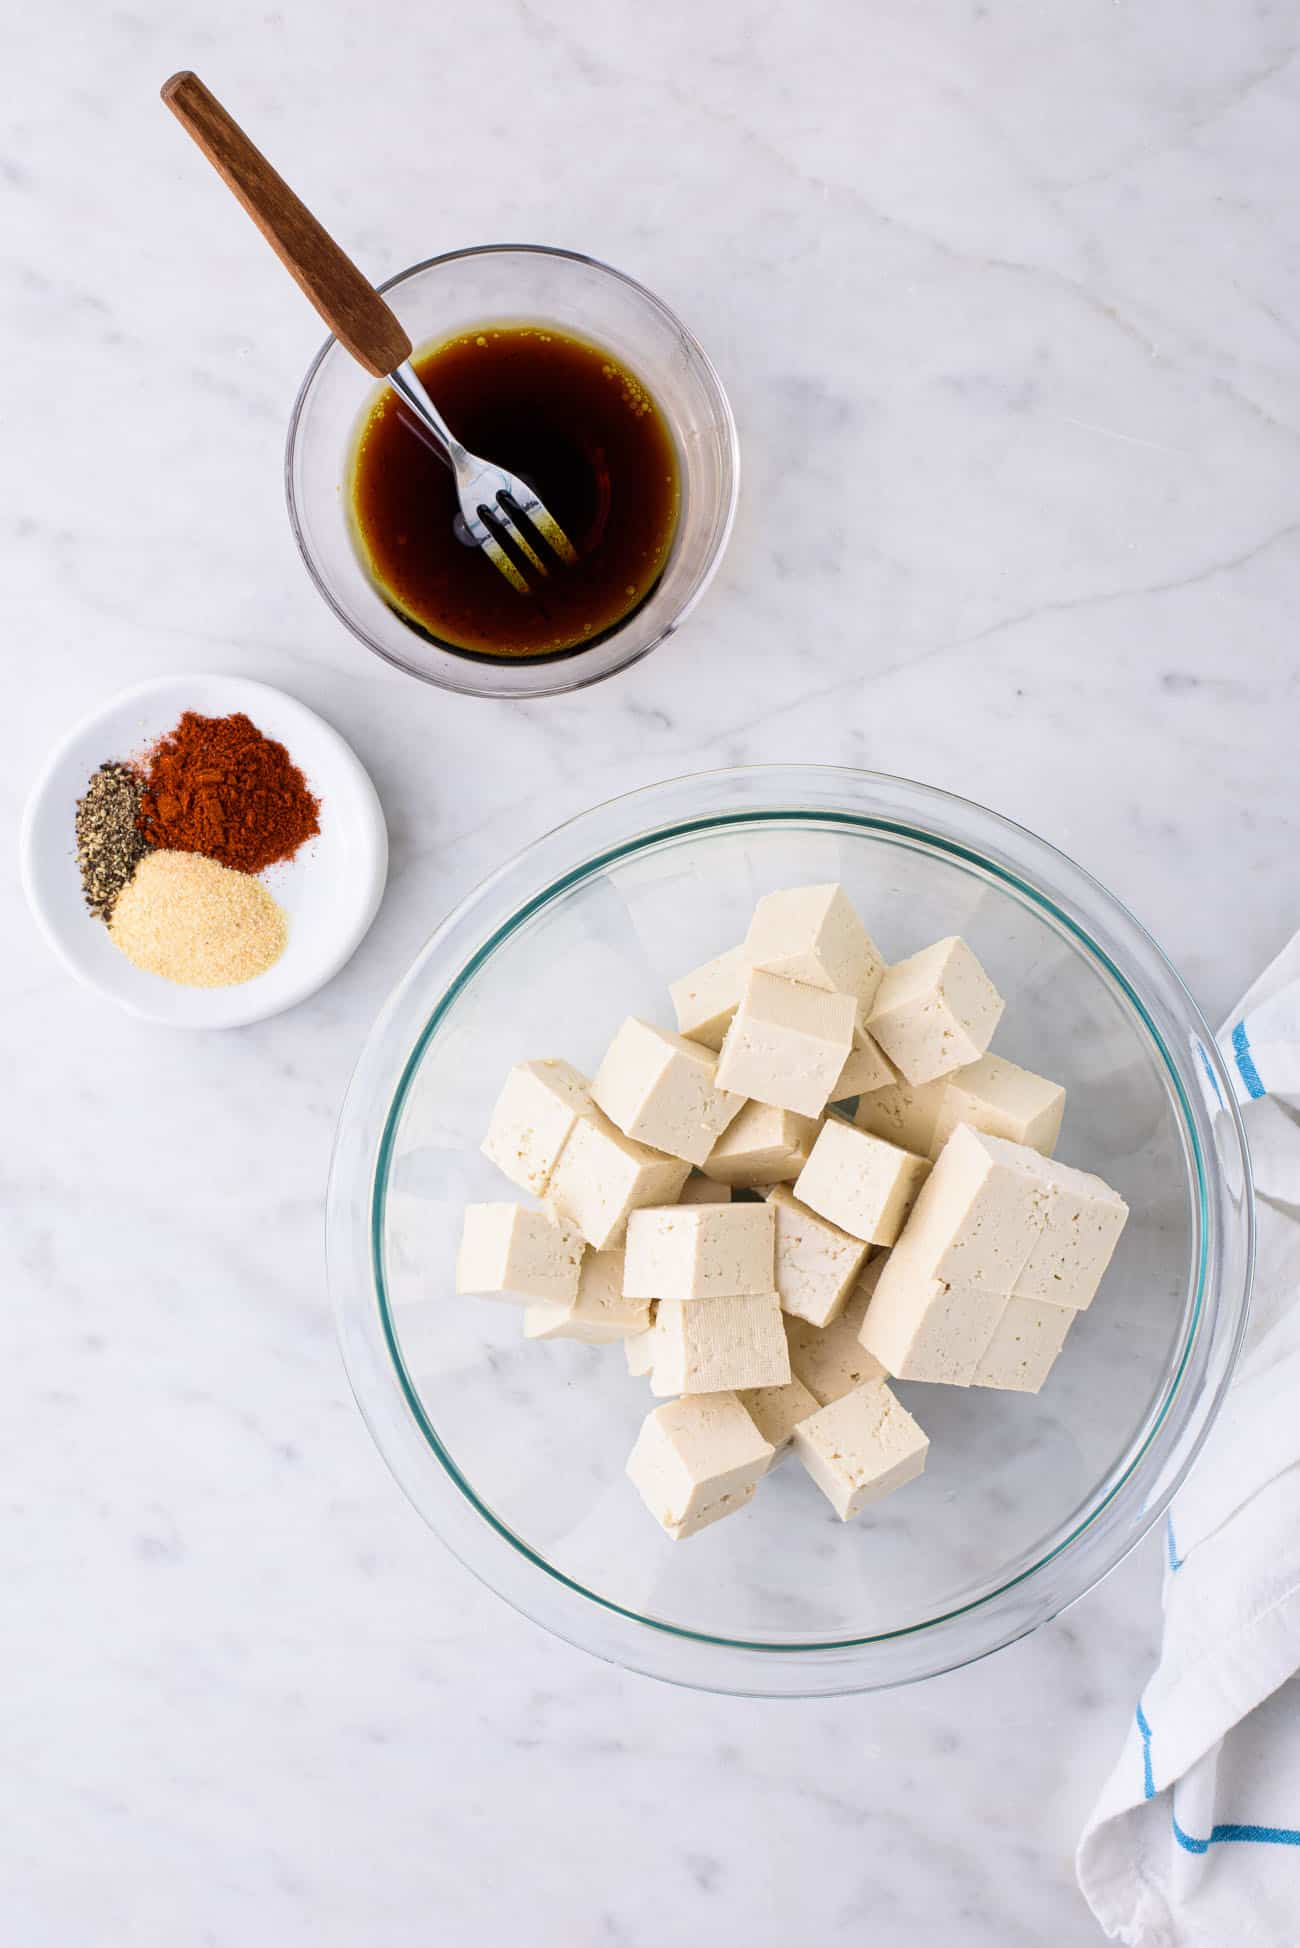 Cubed tofu in a Pyrex bowl next to soy sauce and spices